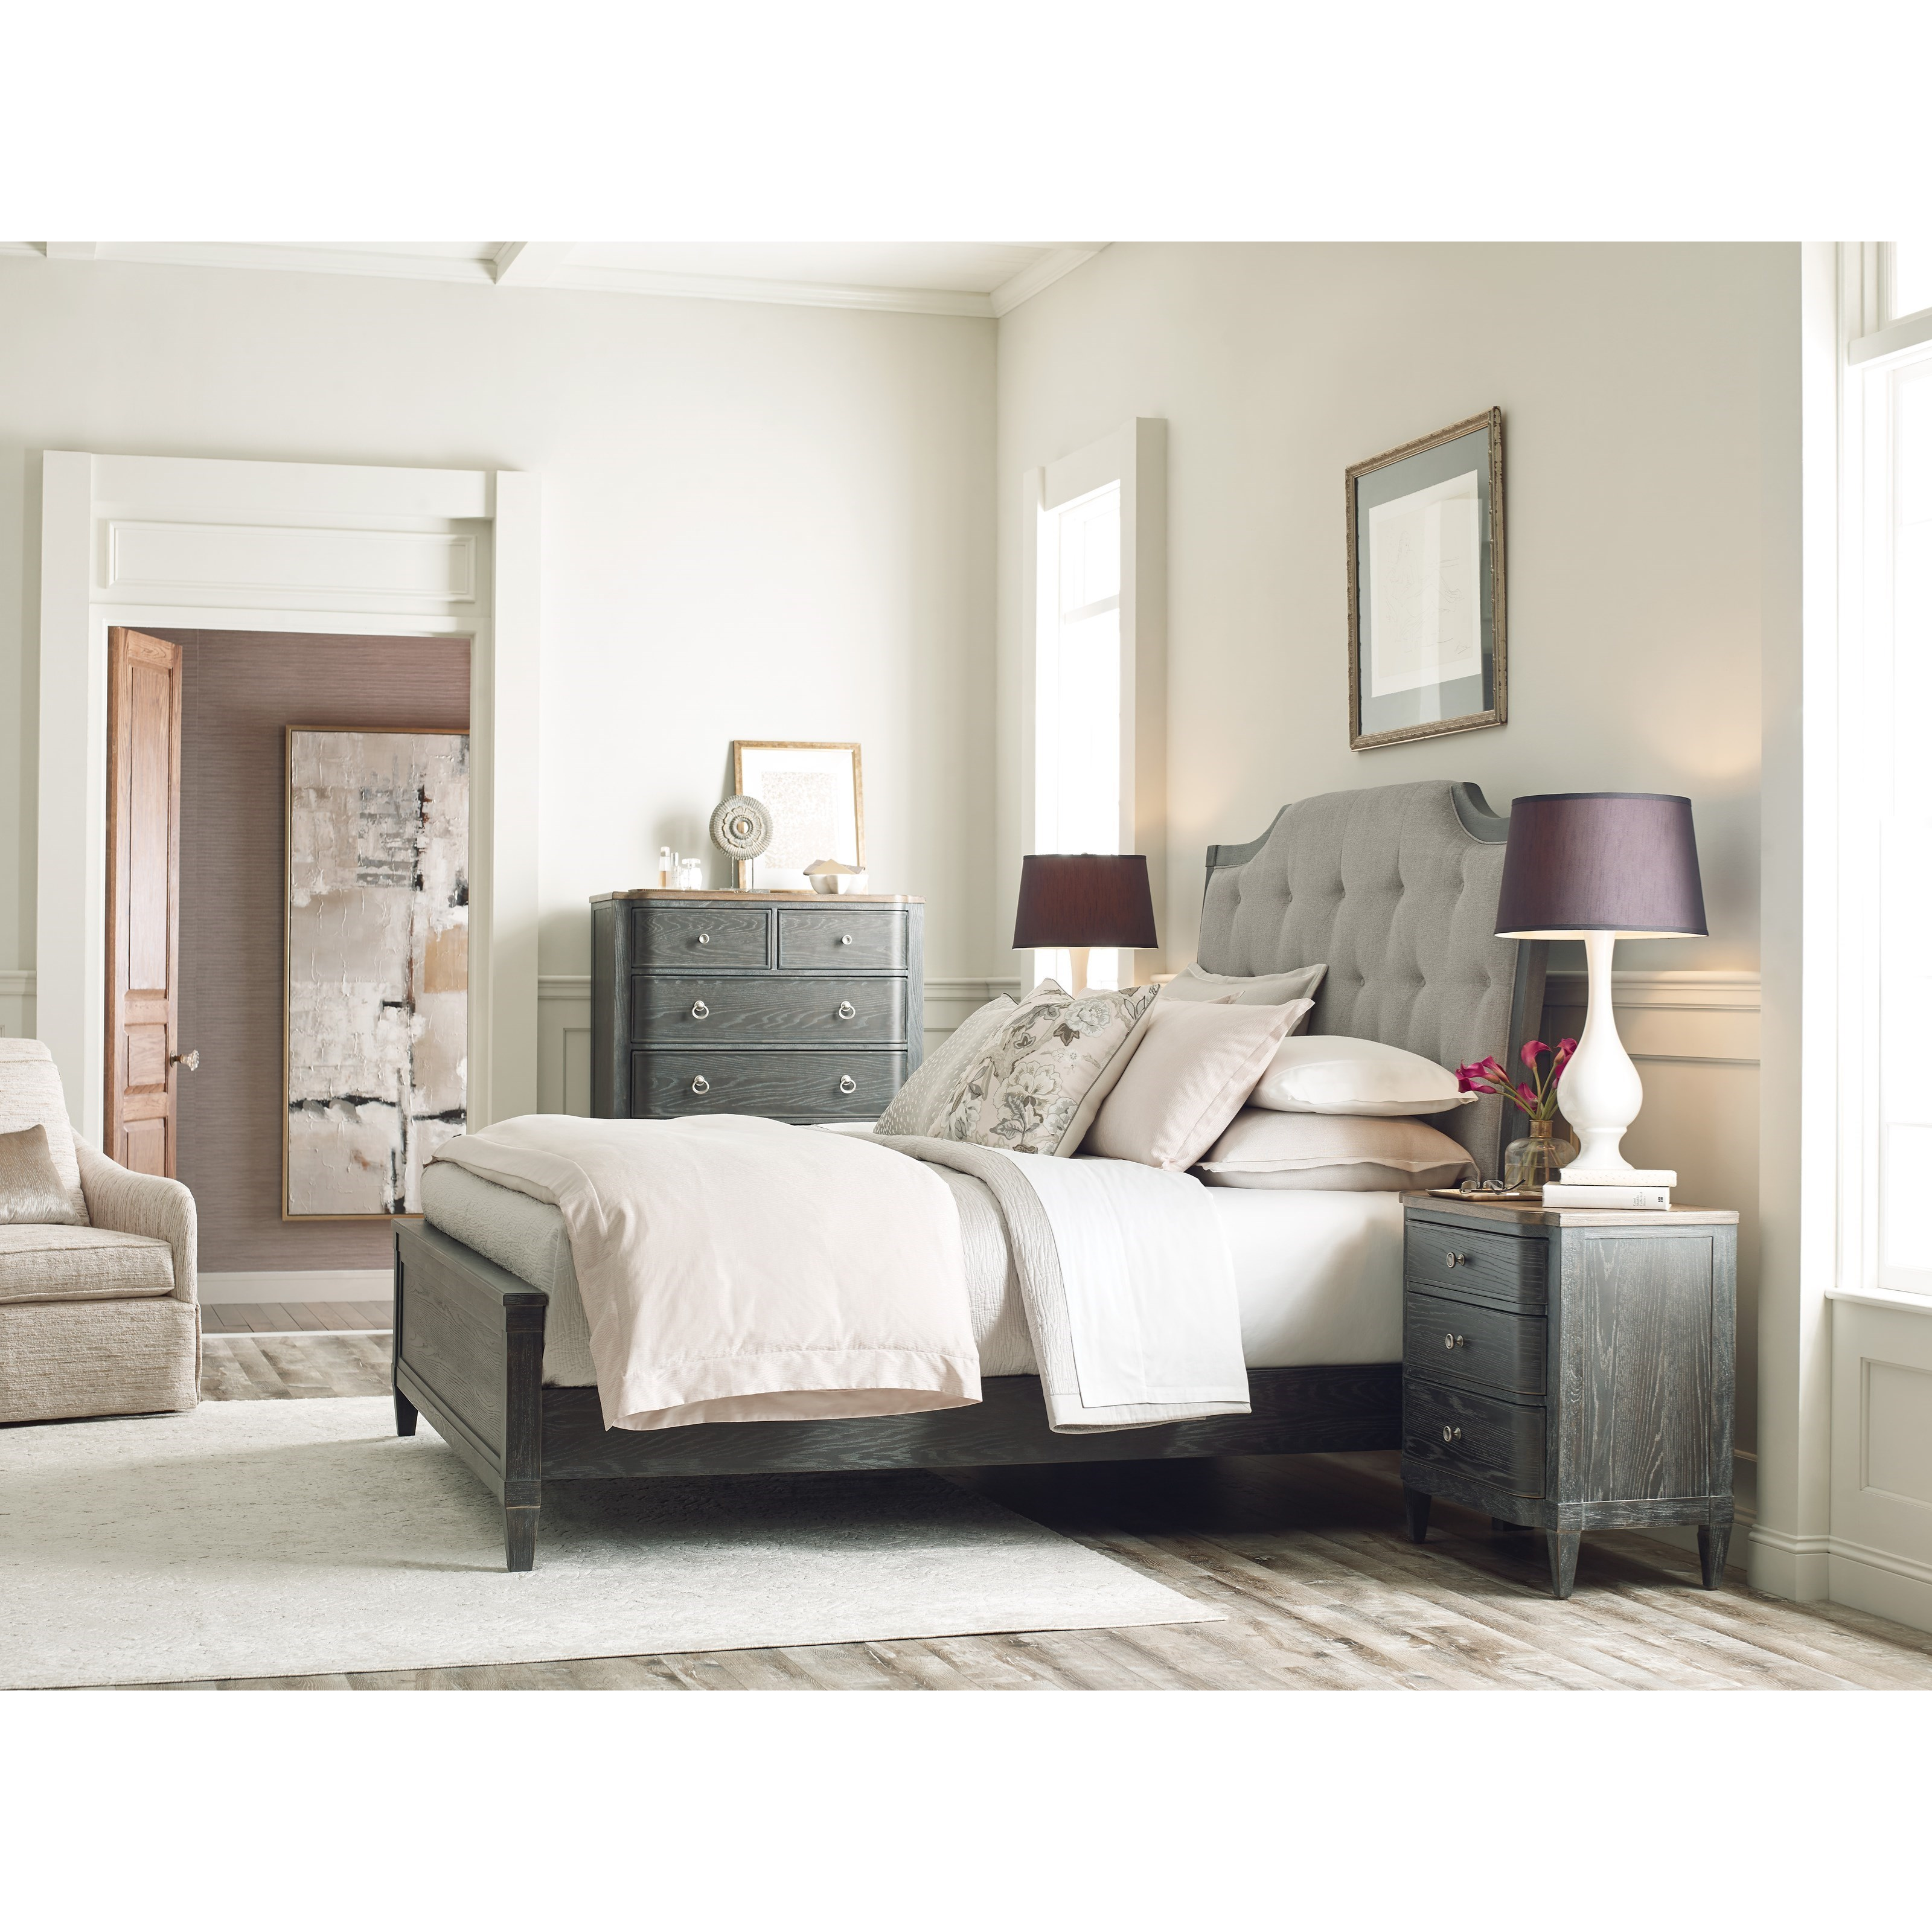 Ardennes King Bedroom Group by American Drew at Alison Craig Home Furnishings